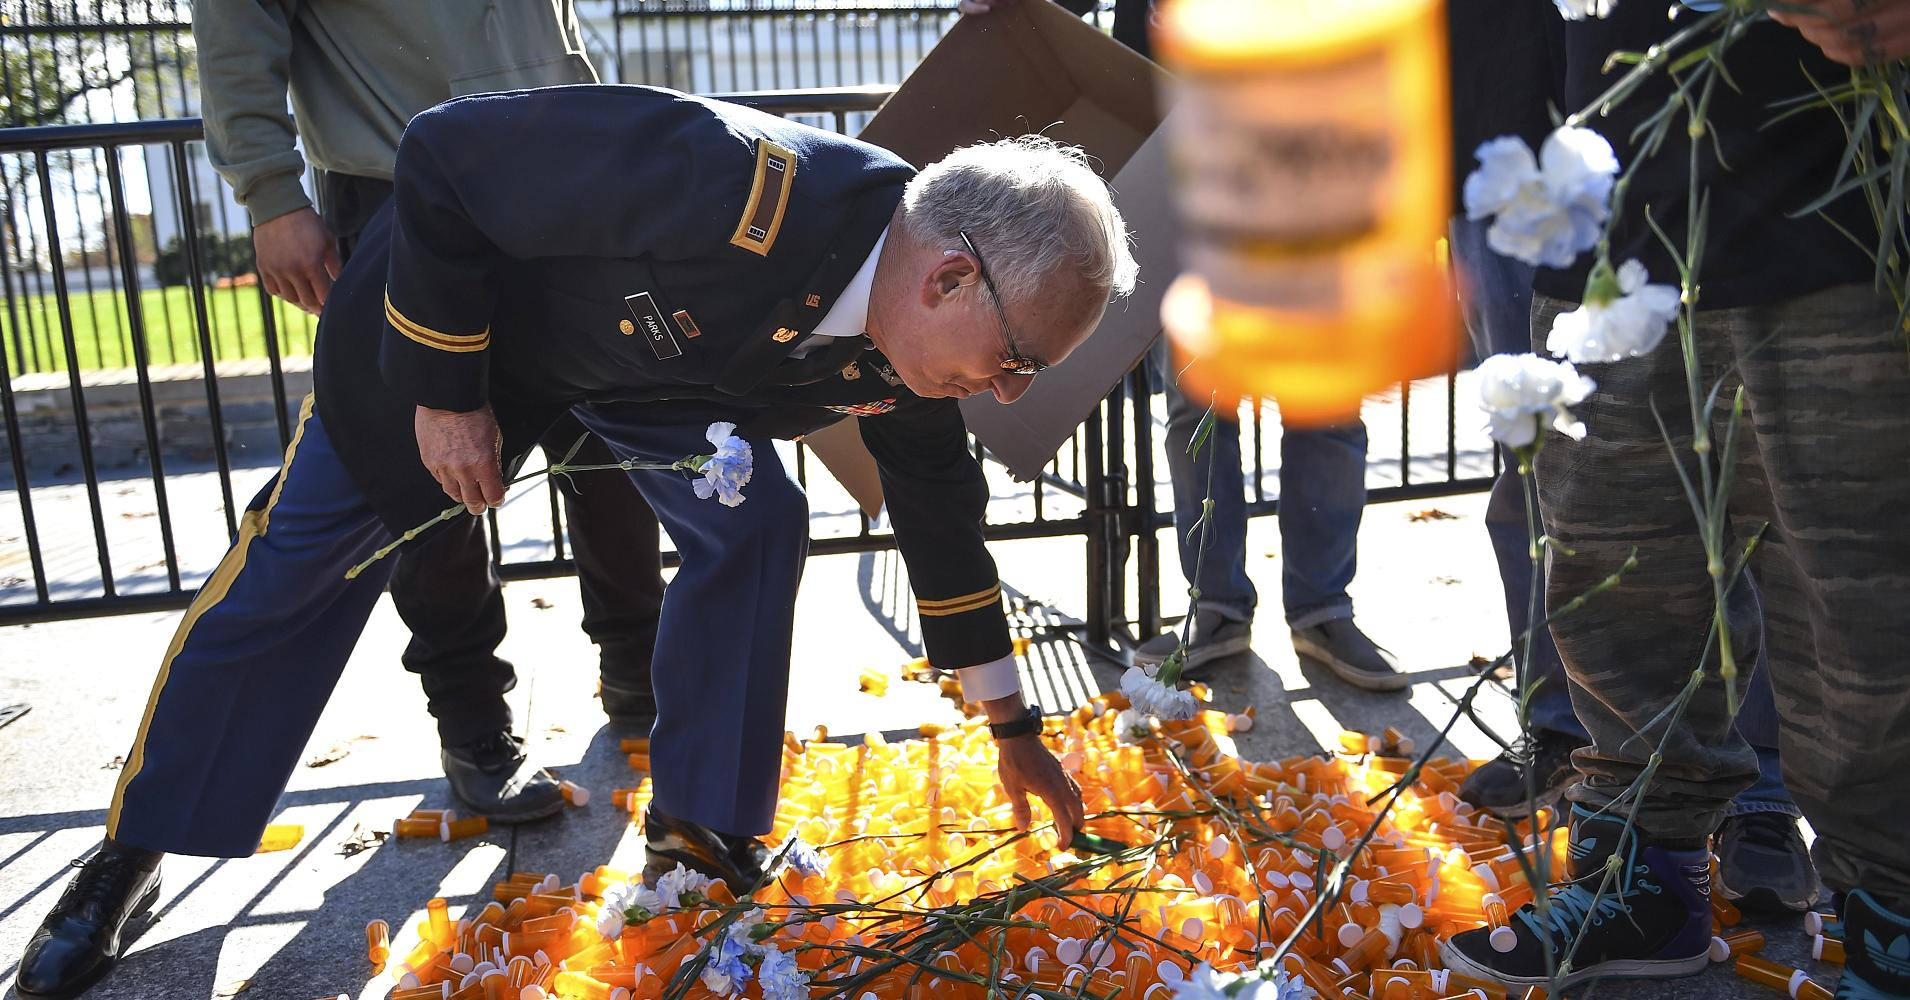 Army veteran CW4 Perry Parks reaches to lift a symbolic pill bottle that was placed in front of the White House by a group of medical marijuana supporters to raise awareness of opioid addiction.